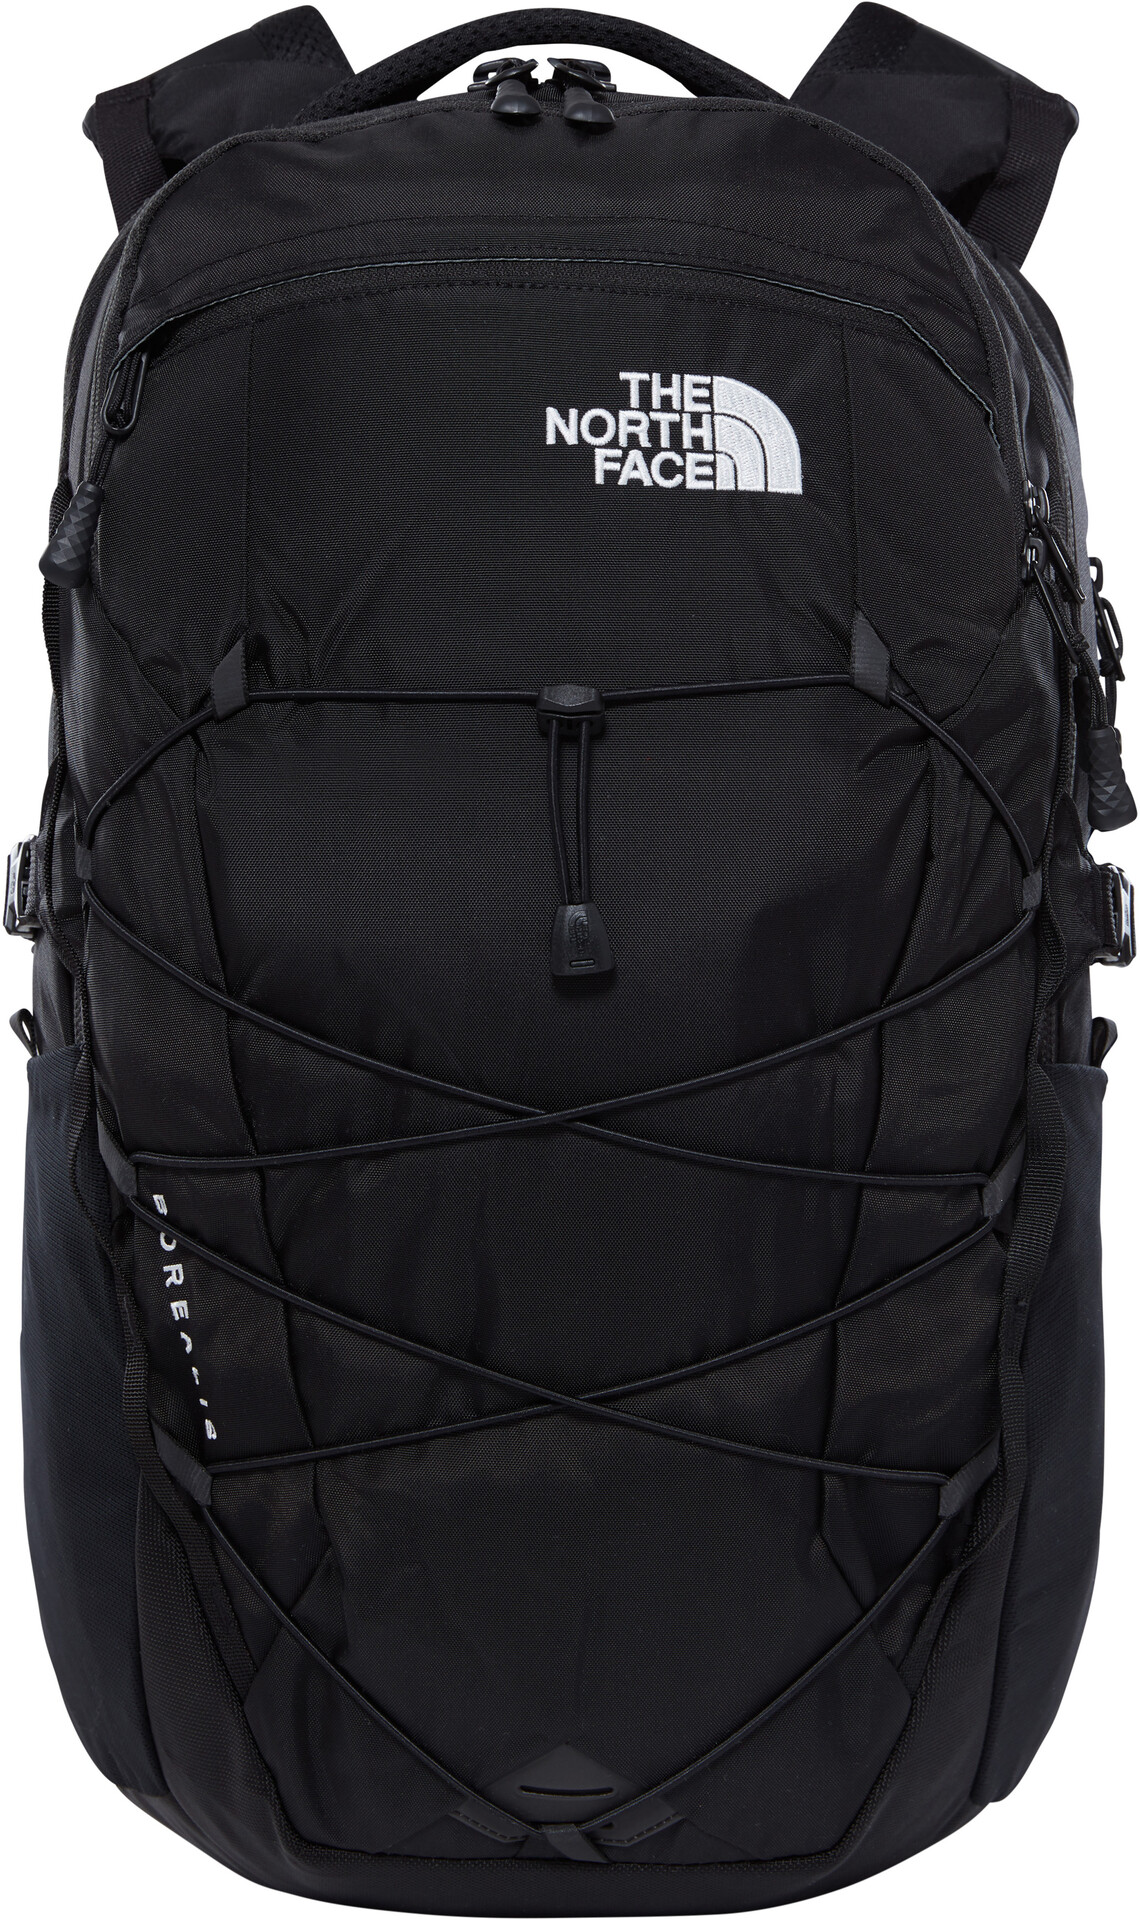 es North Bikester Negro Borealis Mochila The Face 4Wzw8qST4P